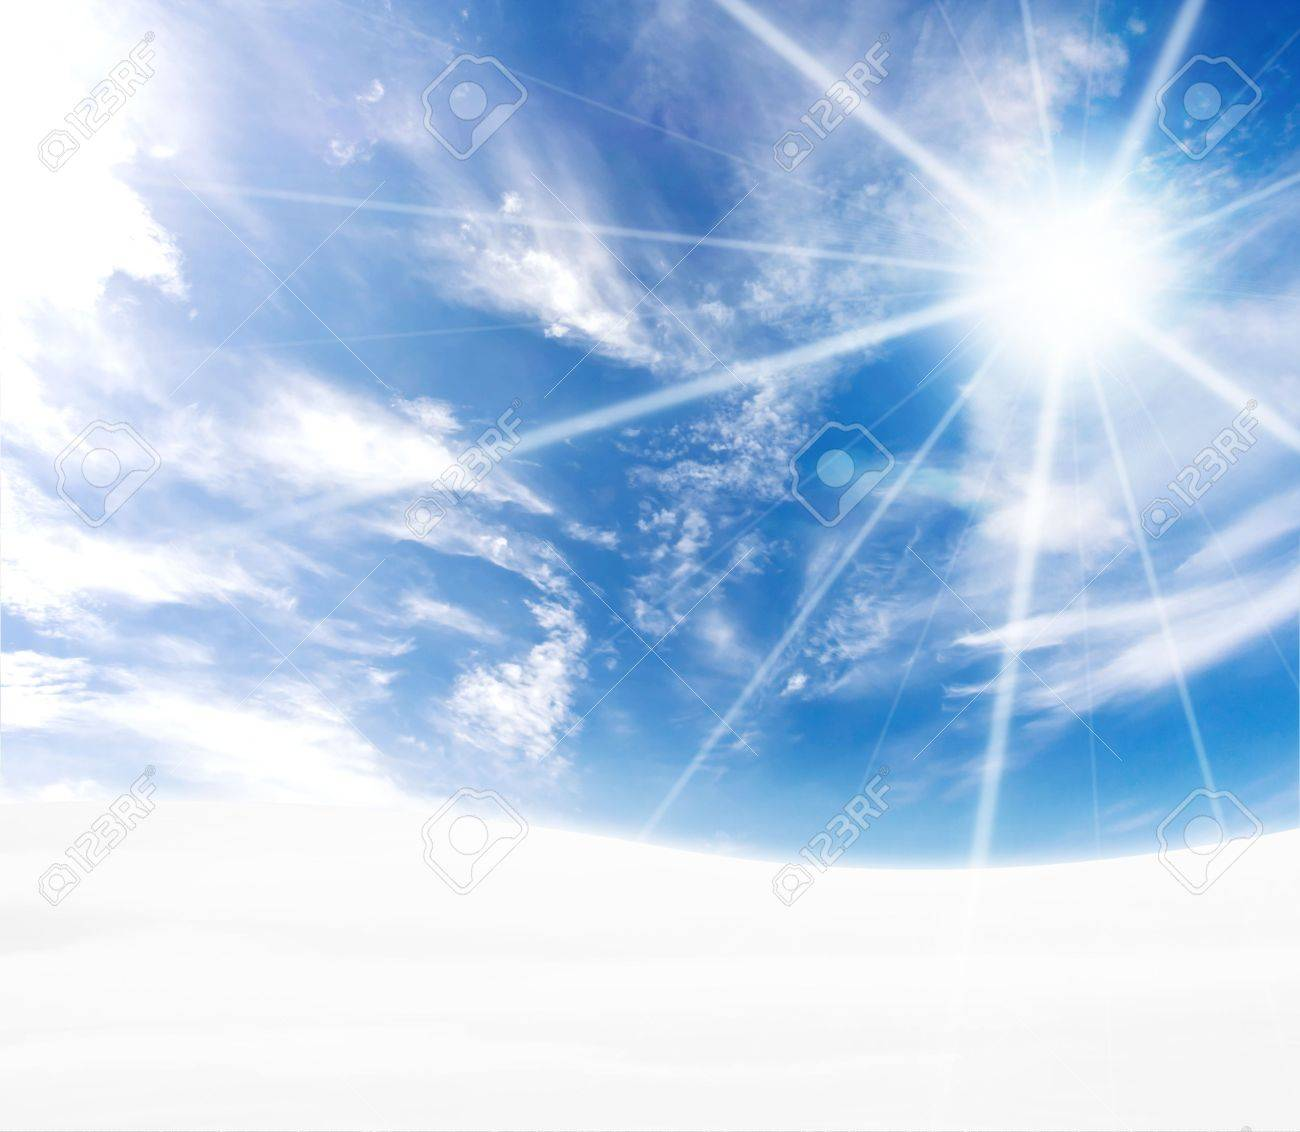 A simple tranquil beautiful S-curved horizon with blue sky and winter snow. Freezing feel with sun flare. - 3939818